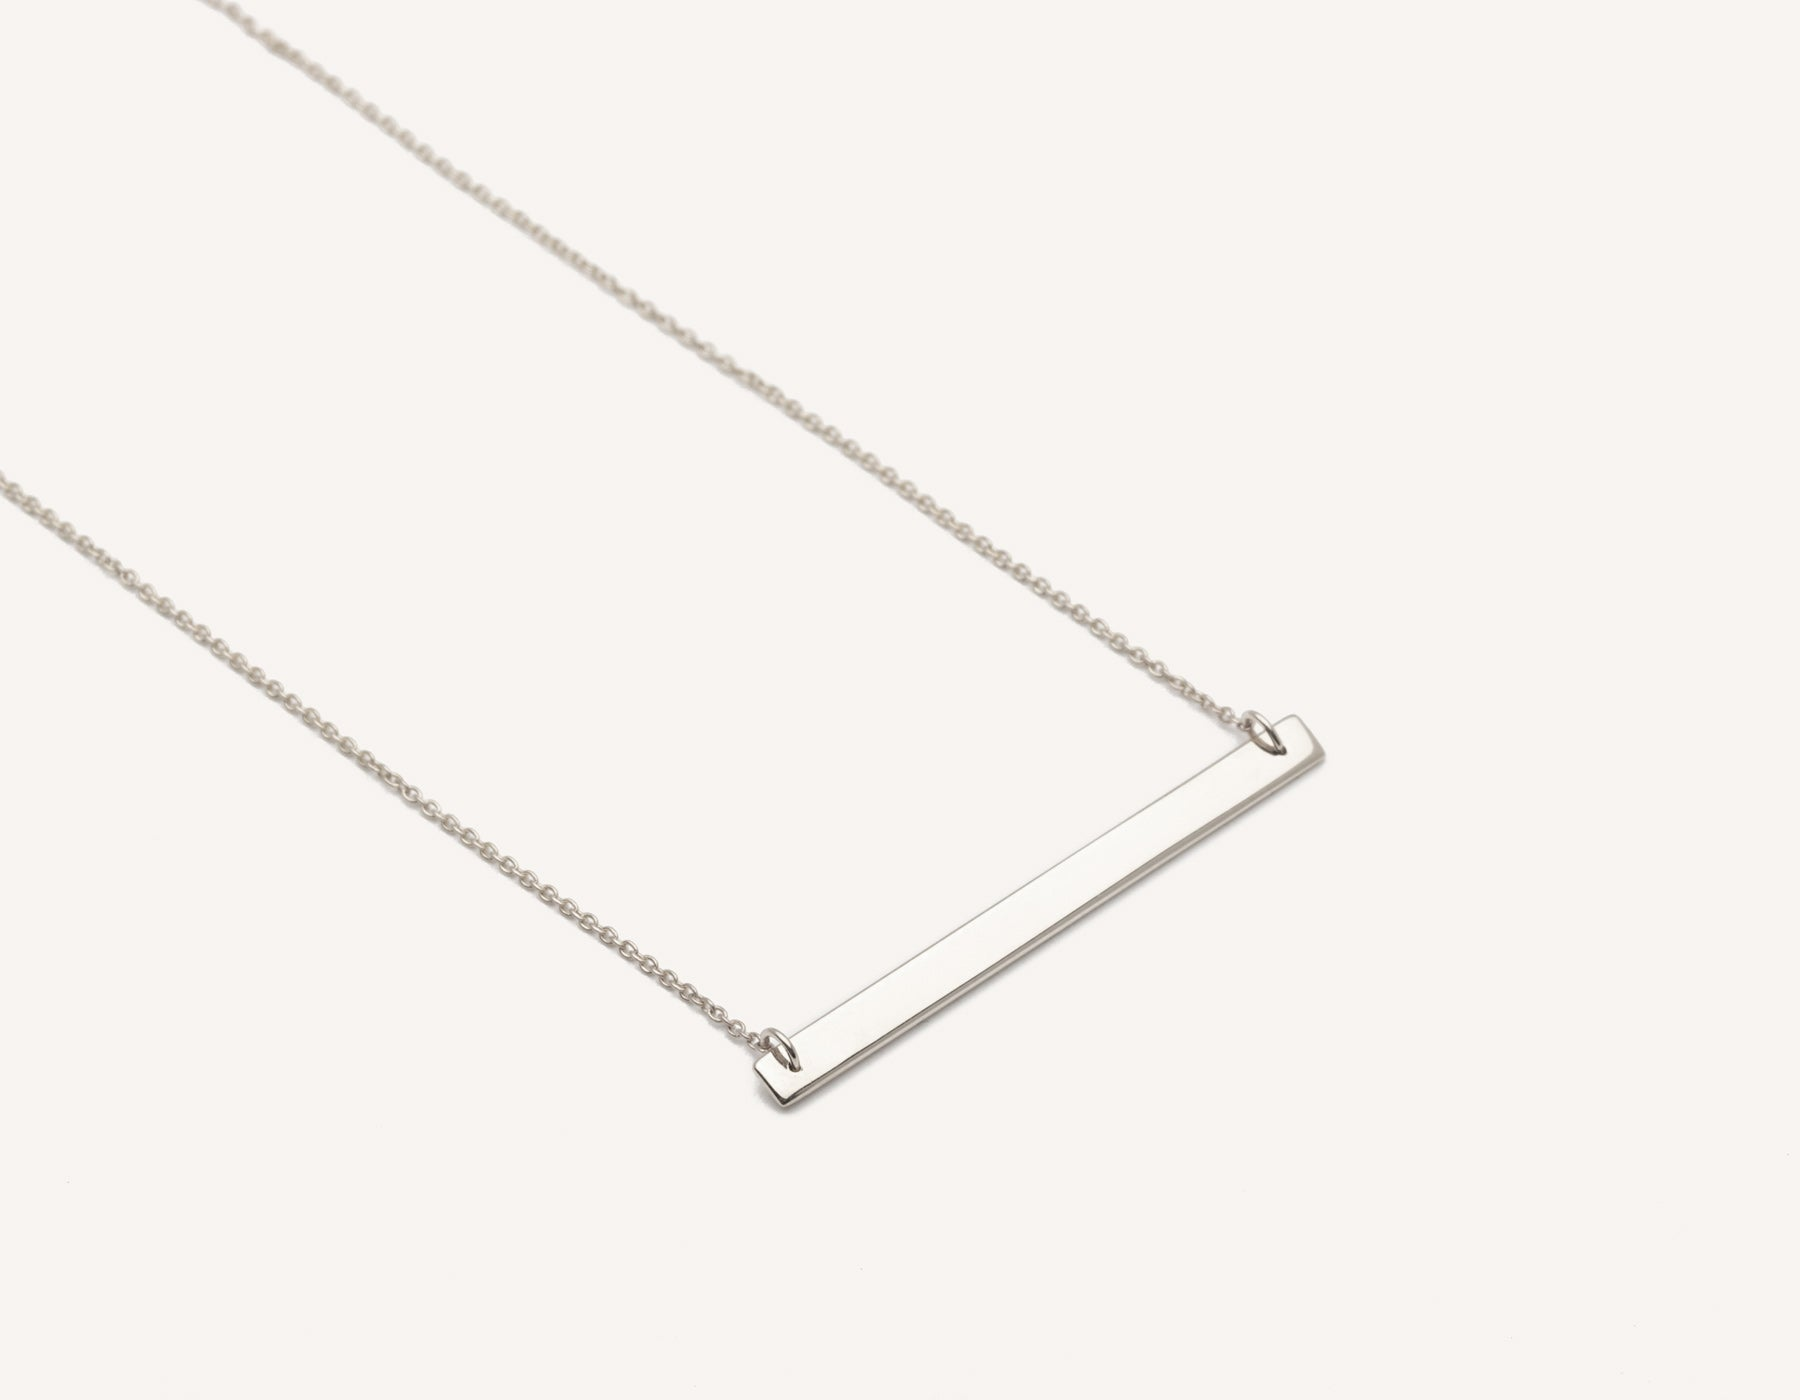 simple custom 14k solid gold thin Bar Necklace on delicate 17 inch chain by Vrai & Oro modern jewelry, 14K White Gold